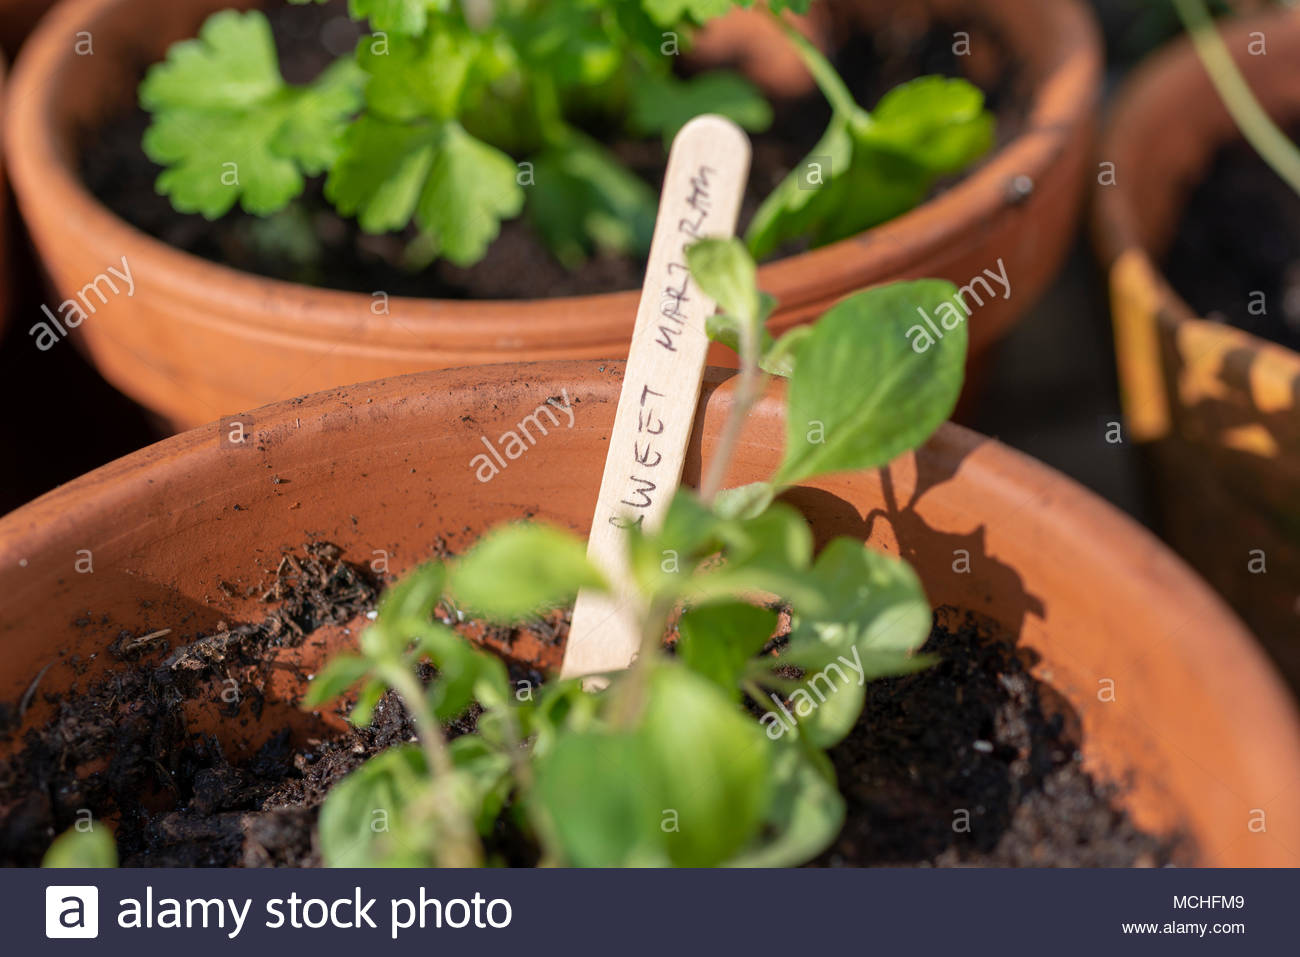 Terracotta plant pots with culinary herbs, one labelled Sweet Marjoram on a wooden lollipop stick. - Stock Image